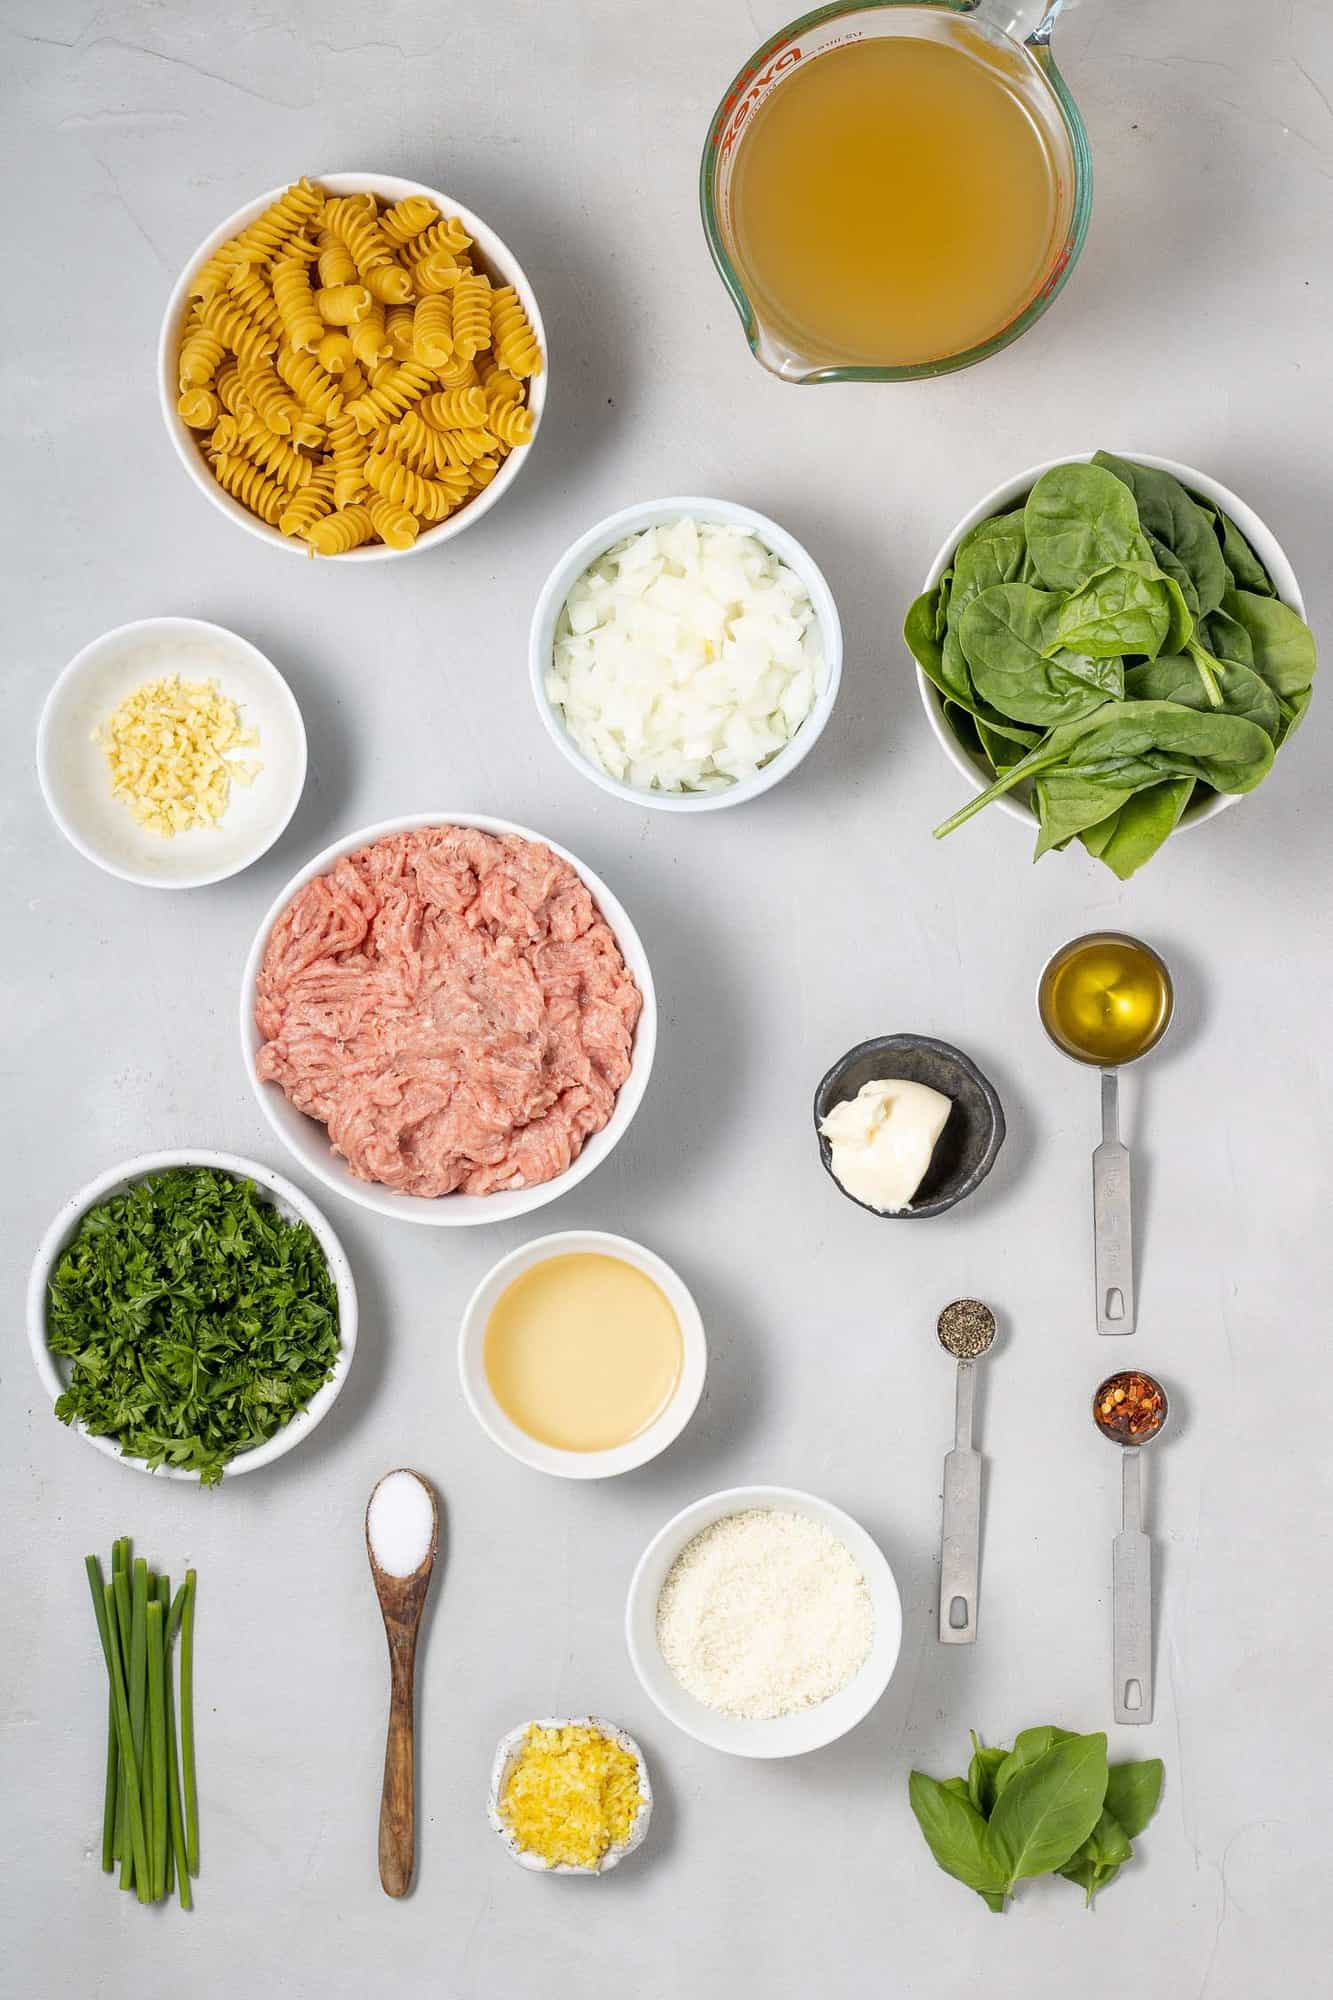 Overhead view of ingredients needed for recipe, including ground chicken, spinach, and lemon.